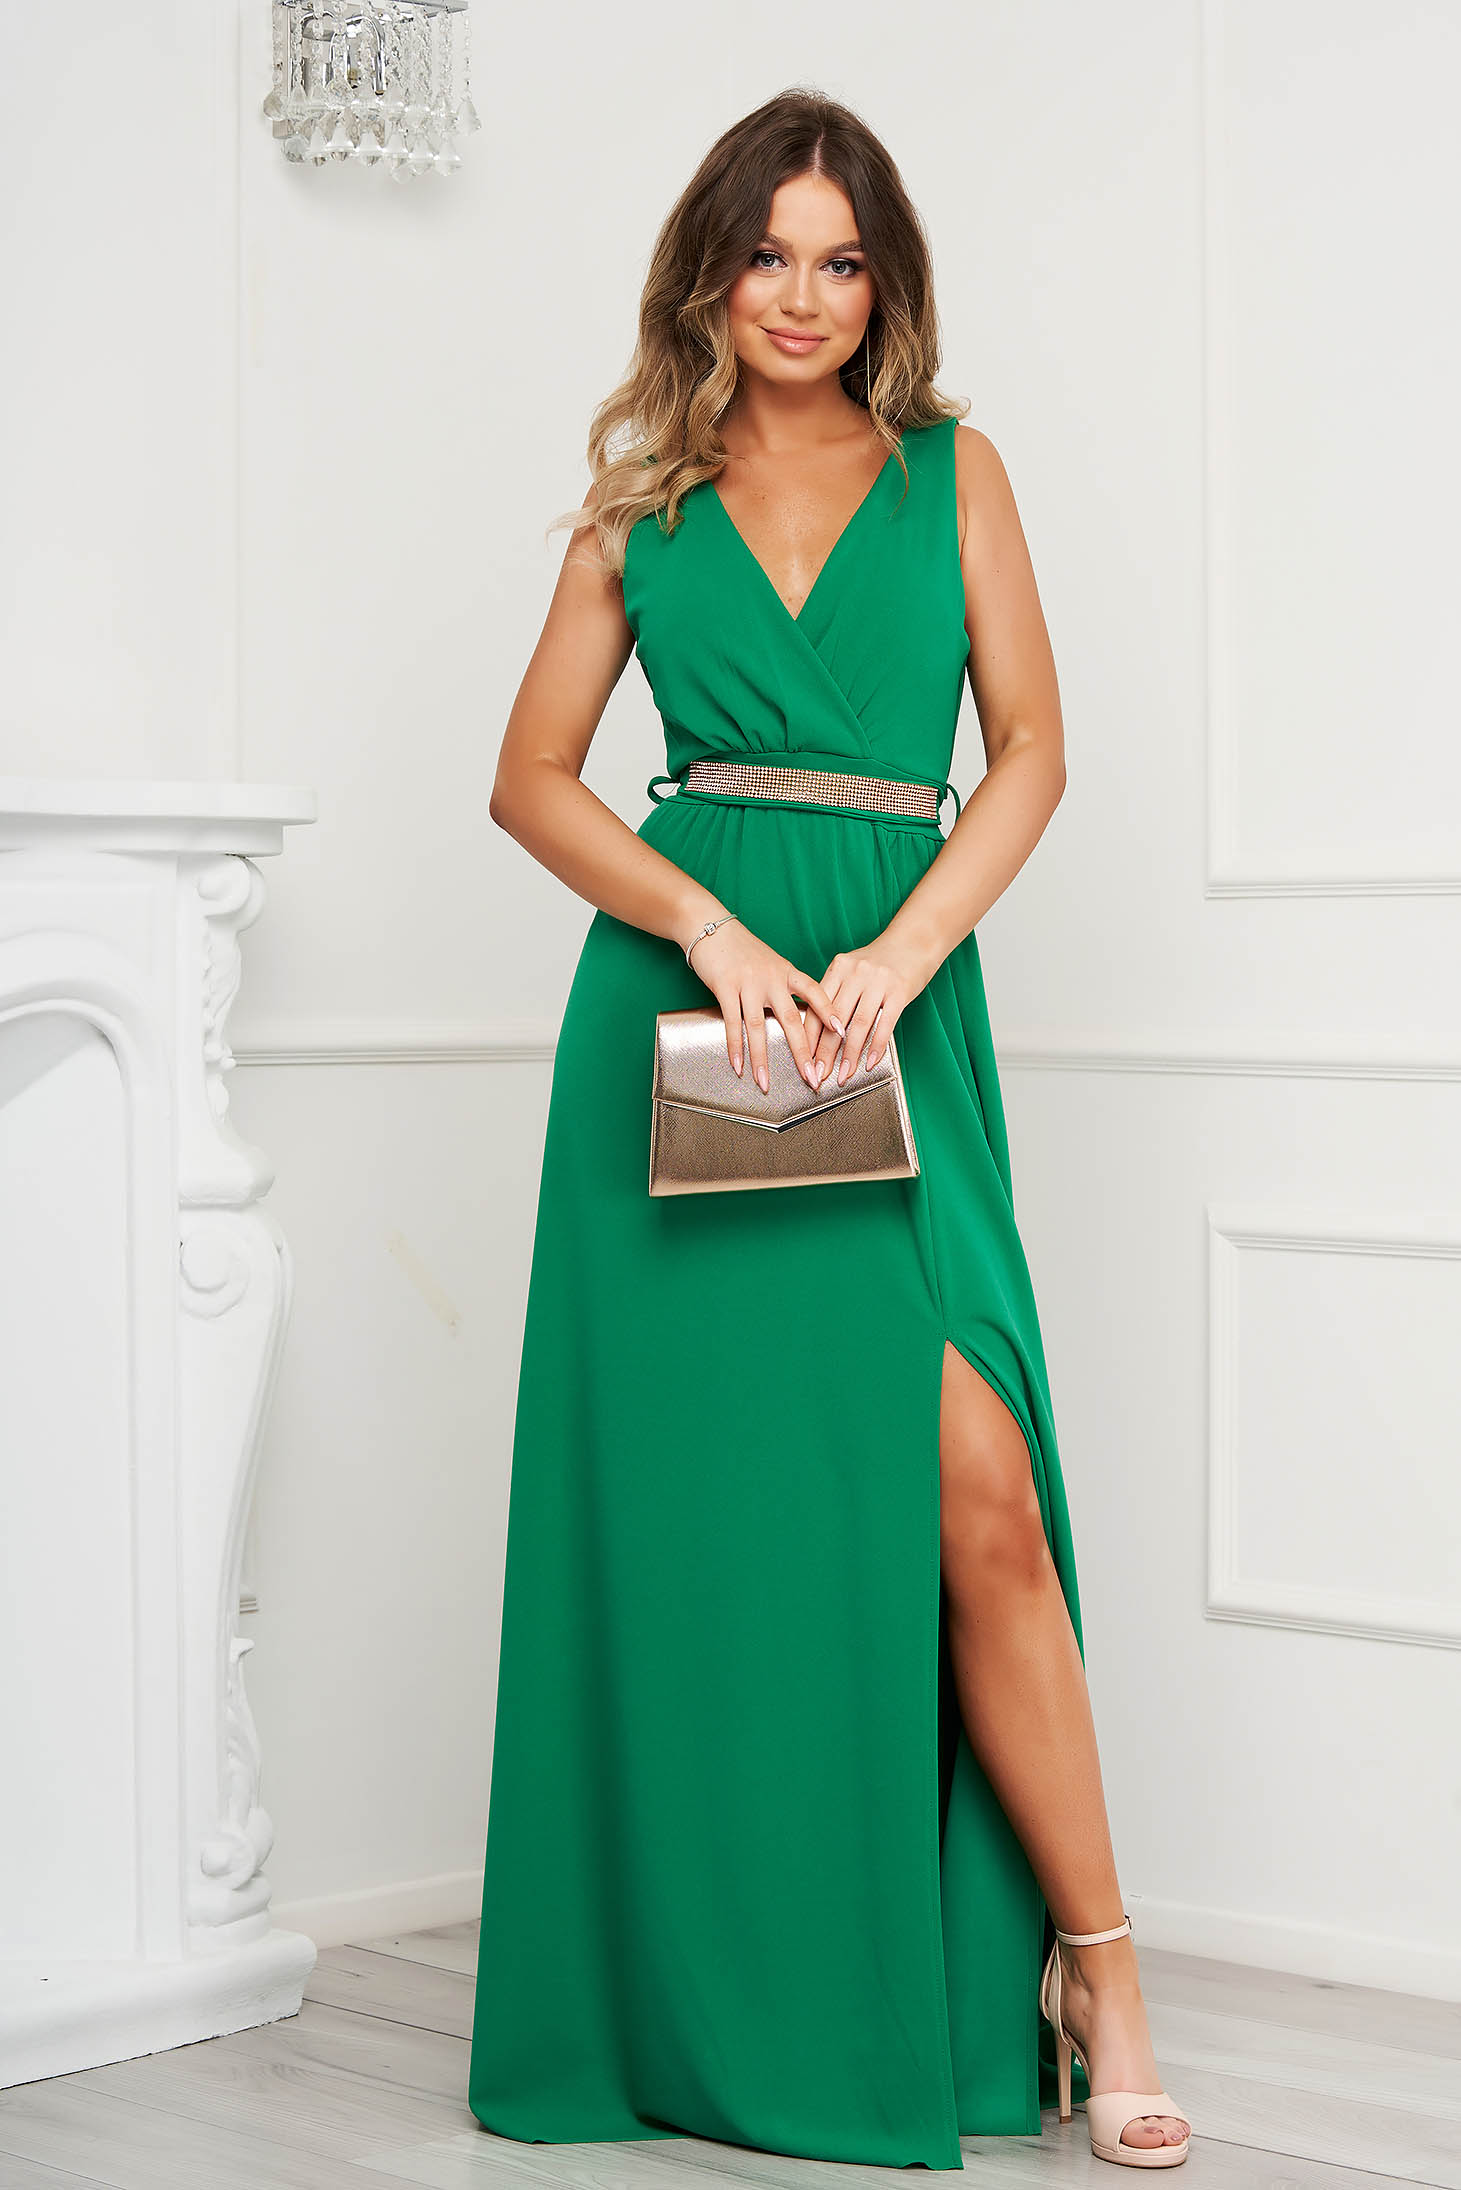 Green dress cloche occasional slit from elastic fabric with v-neckline with embellished accessories